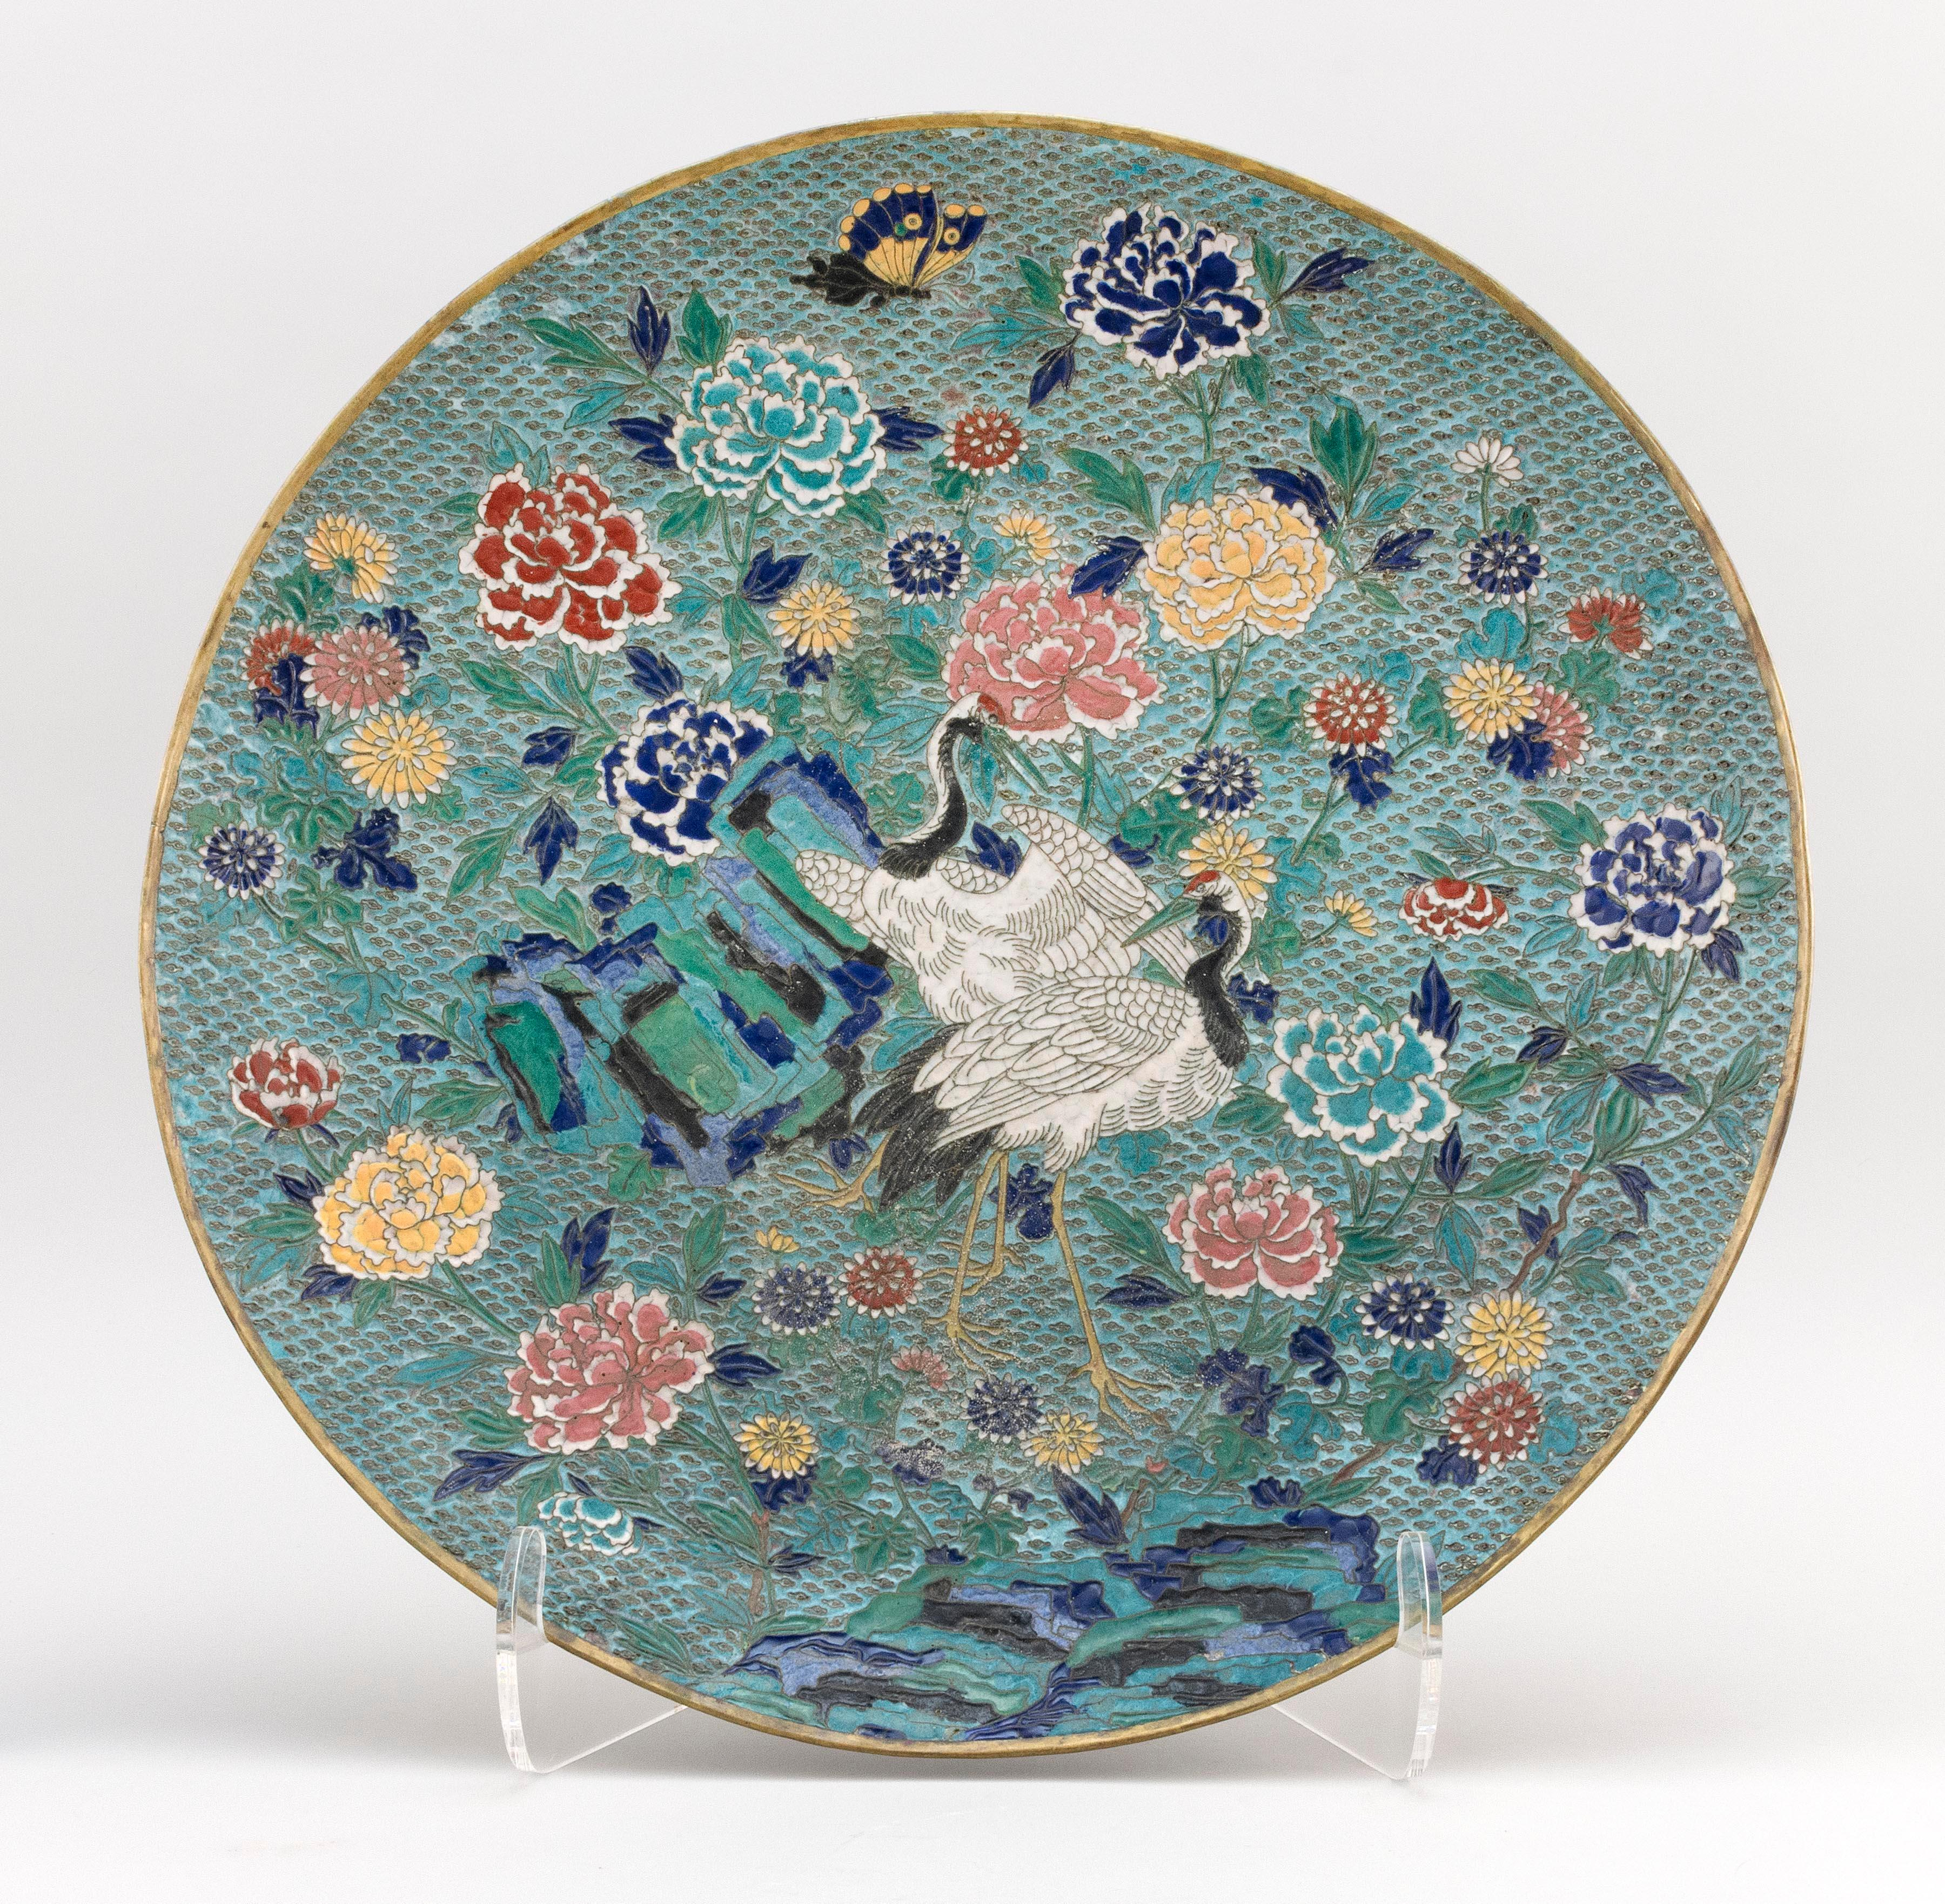 "JAPANESE SCULPTED ENAMEL CHARGER Obverse with crane and peony decoration. Underside in a floral pattern. Diameter 18""."